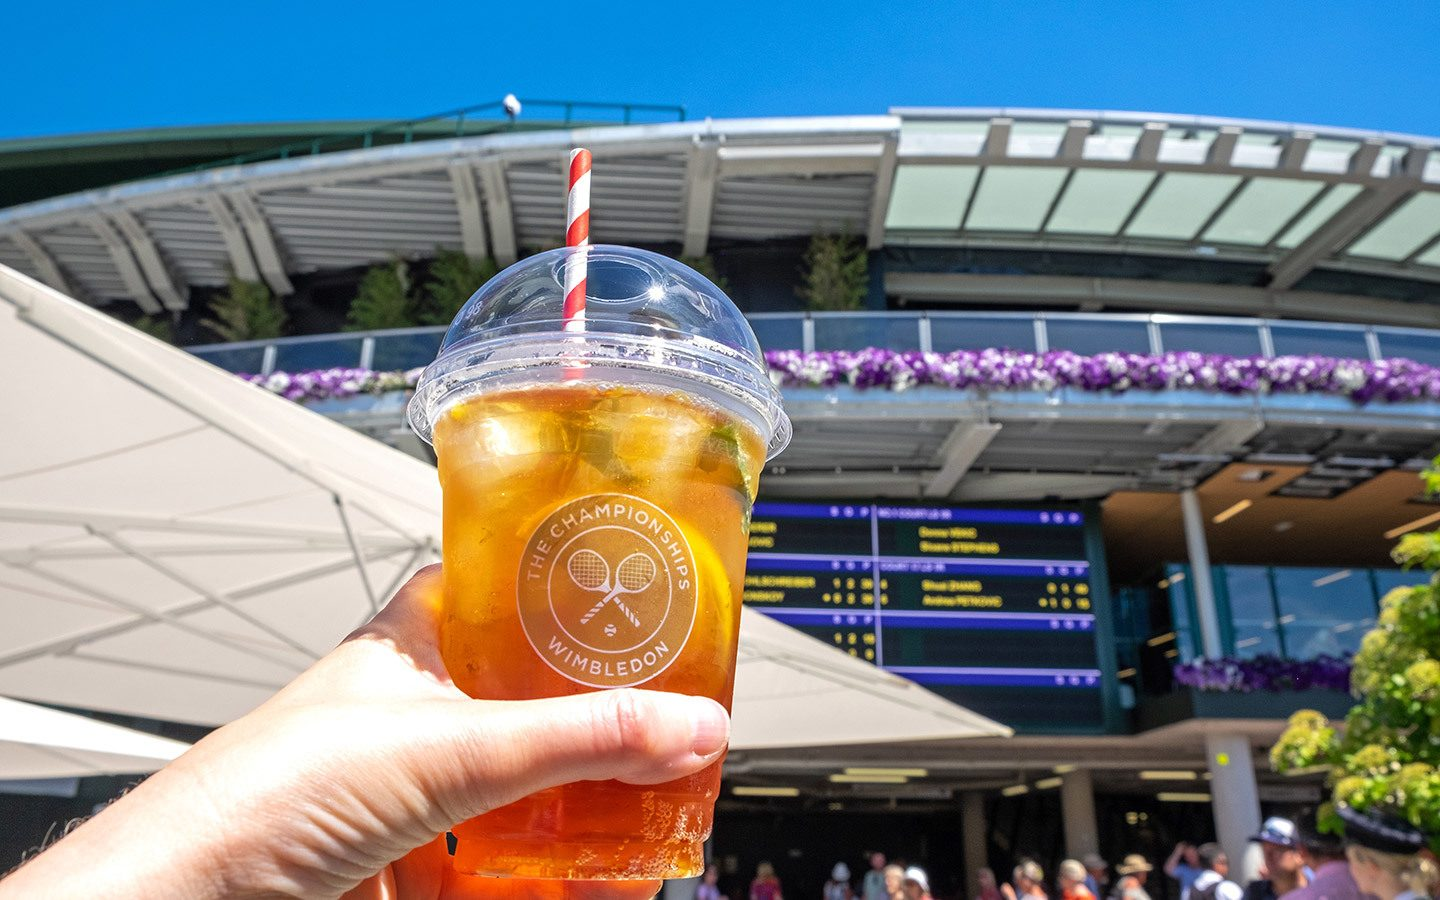 Glass of Pimms at the Wimbledon Tennis Championships